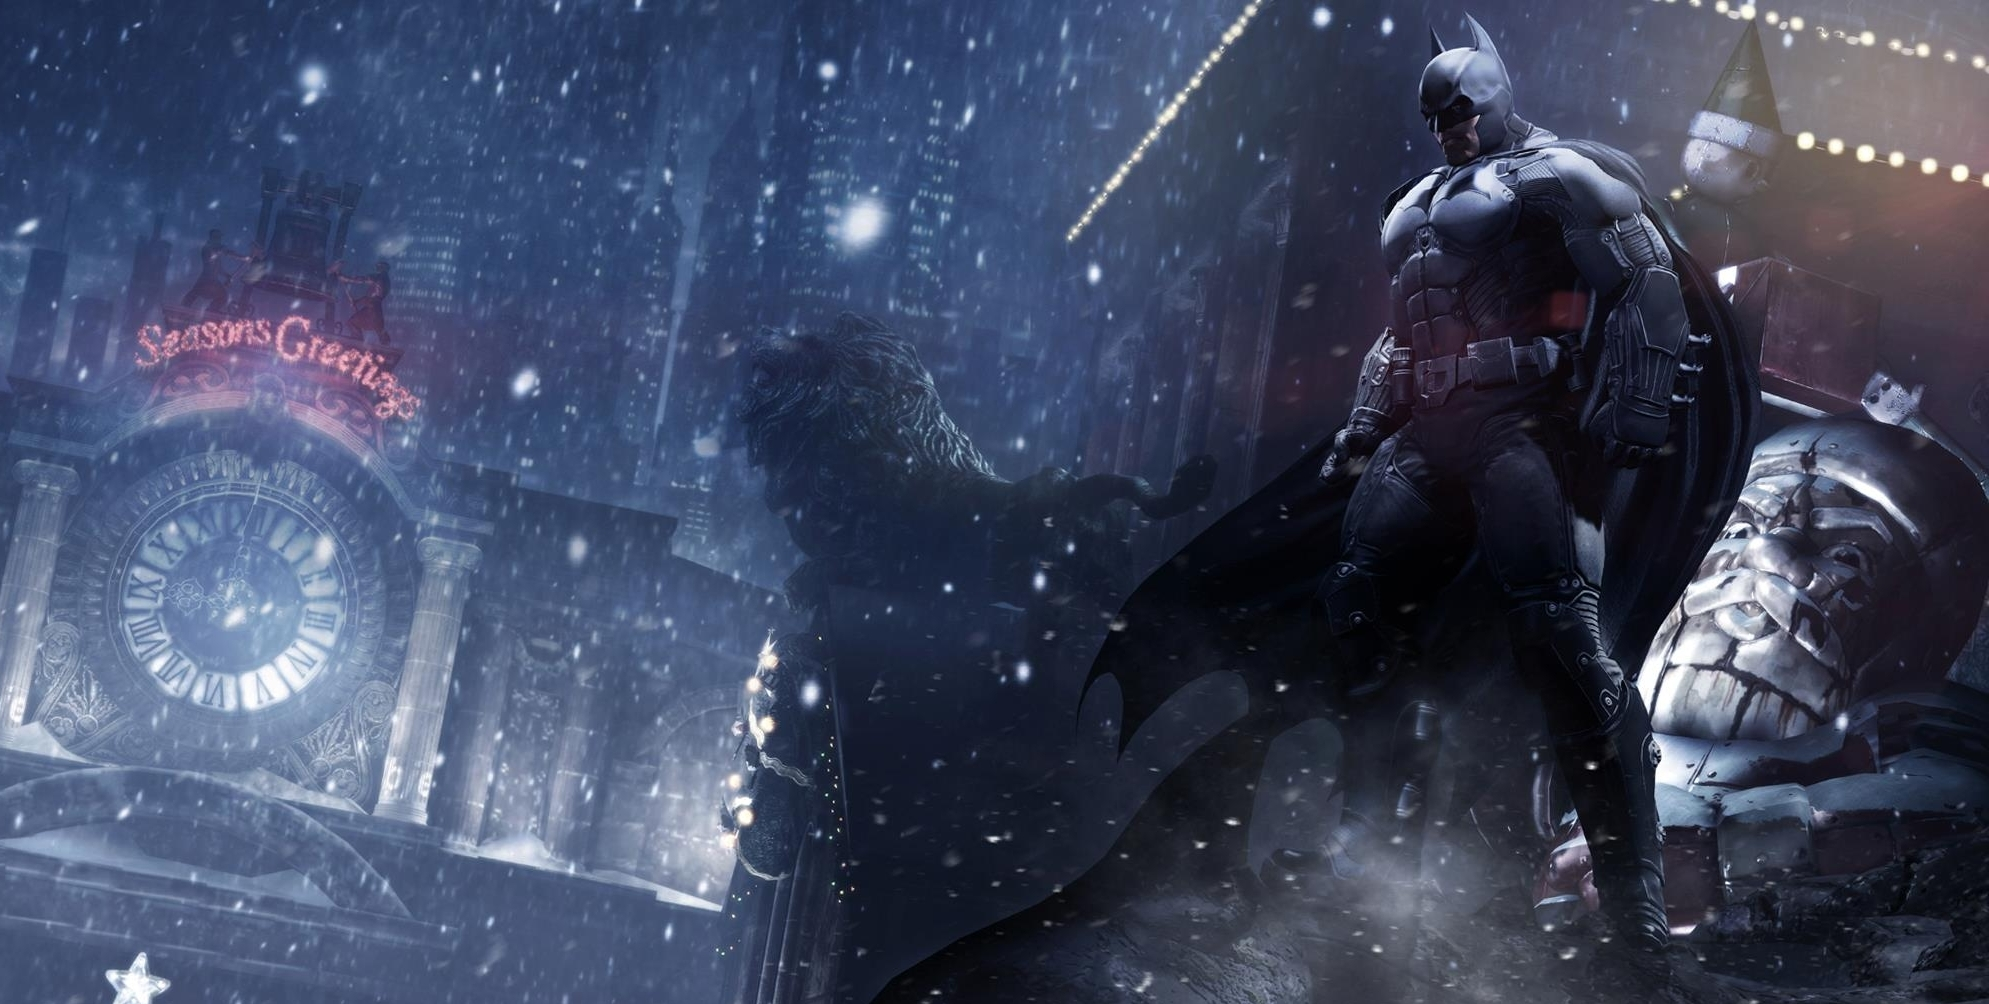 Batman Arkham Origins Wallpaper HD 1989x1004